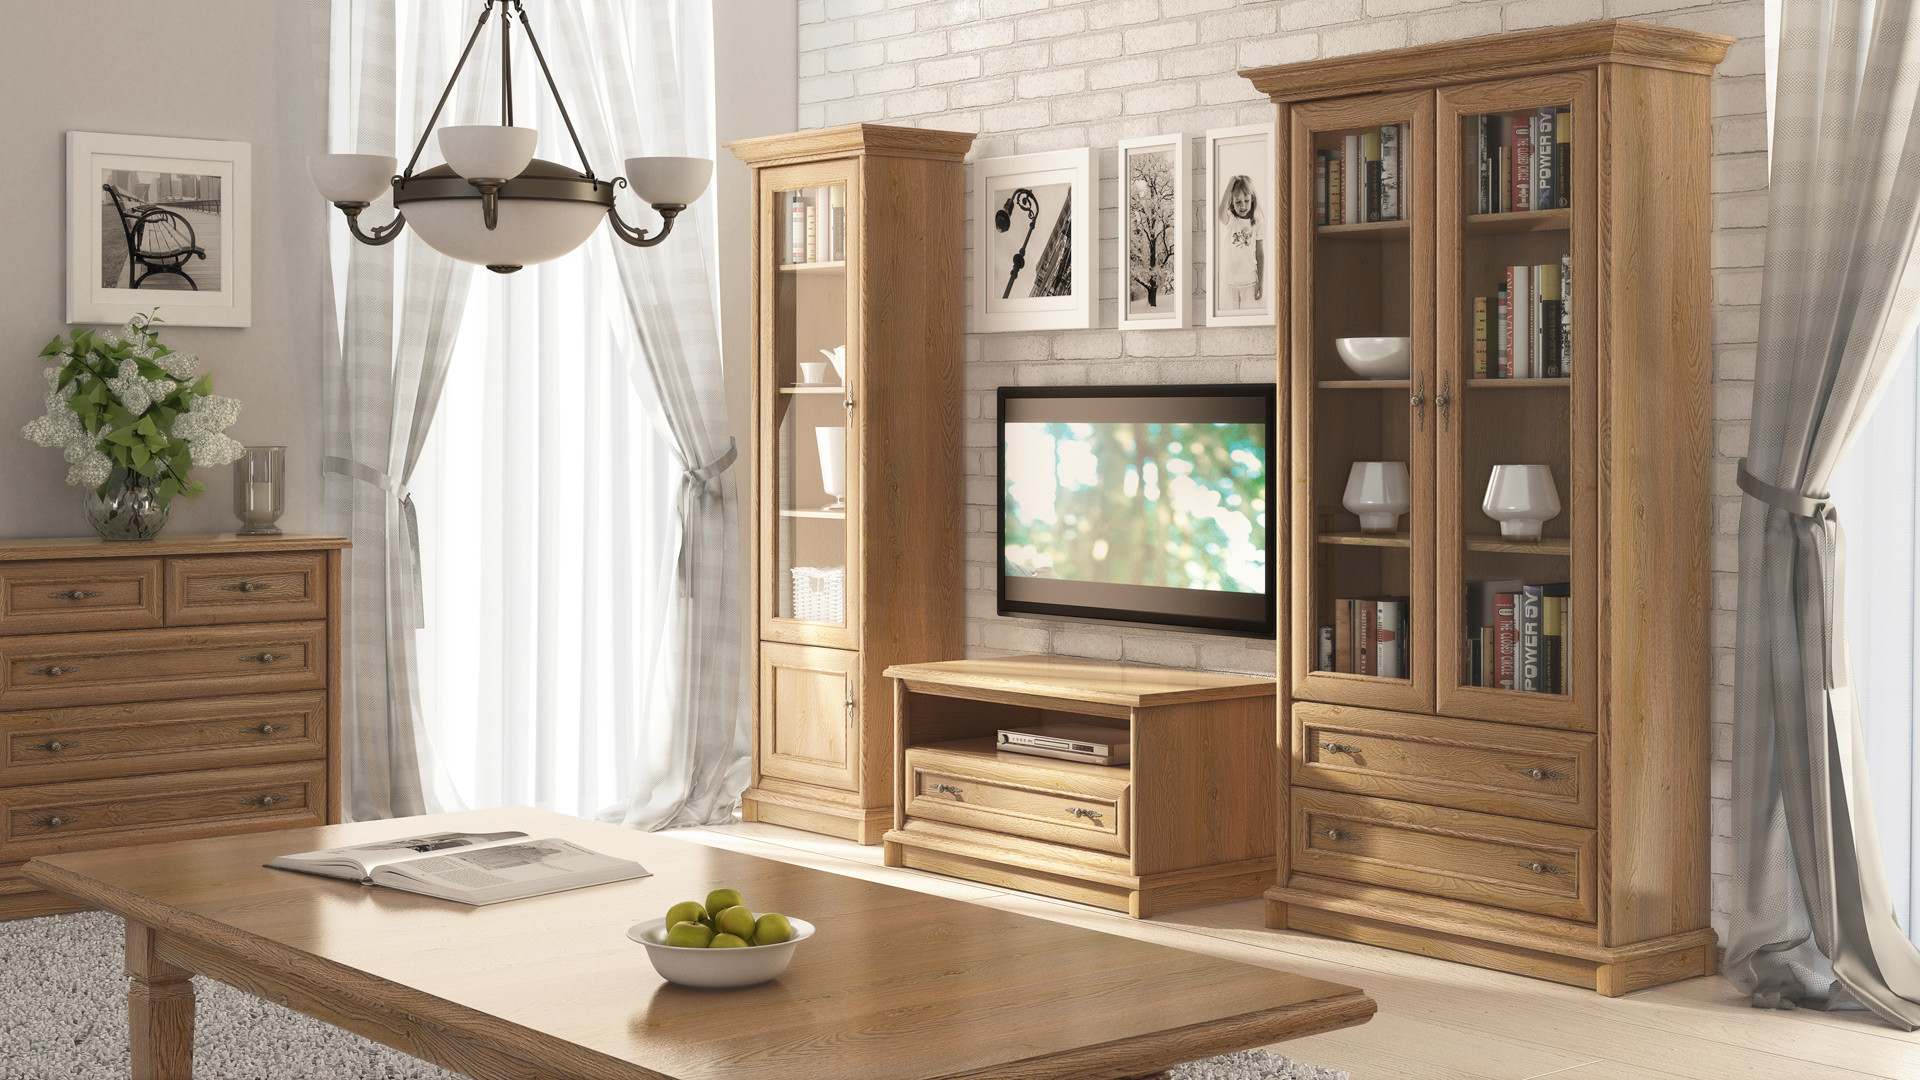 Tv cabinet kent 101cm x 54 5cm x 54 5cm furniture store brw - Signature interiors and design kent ...